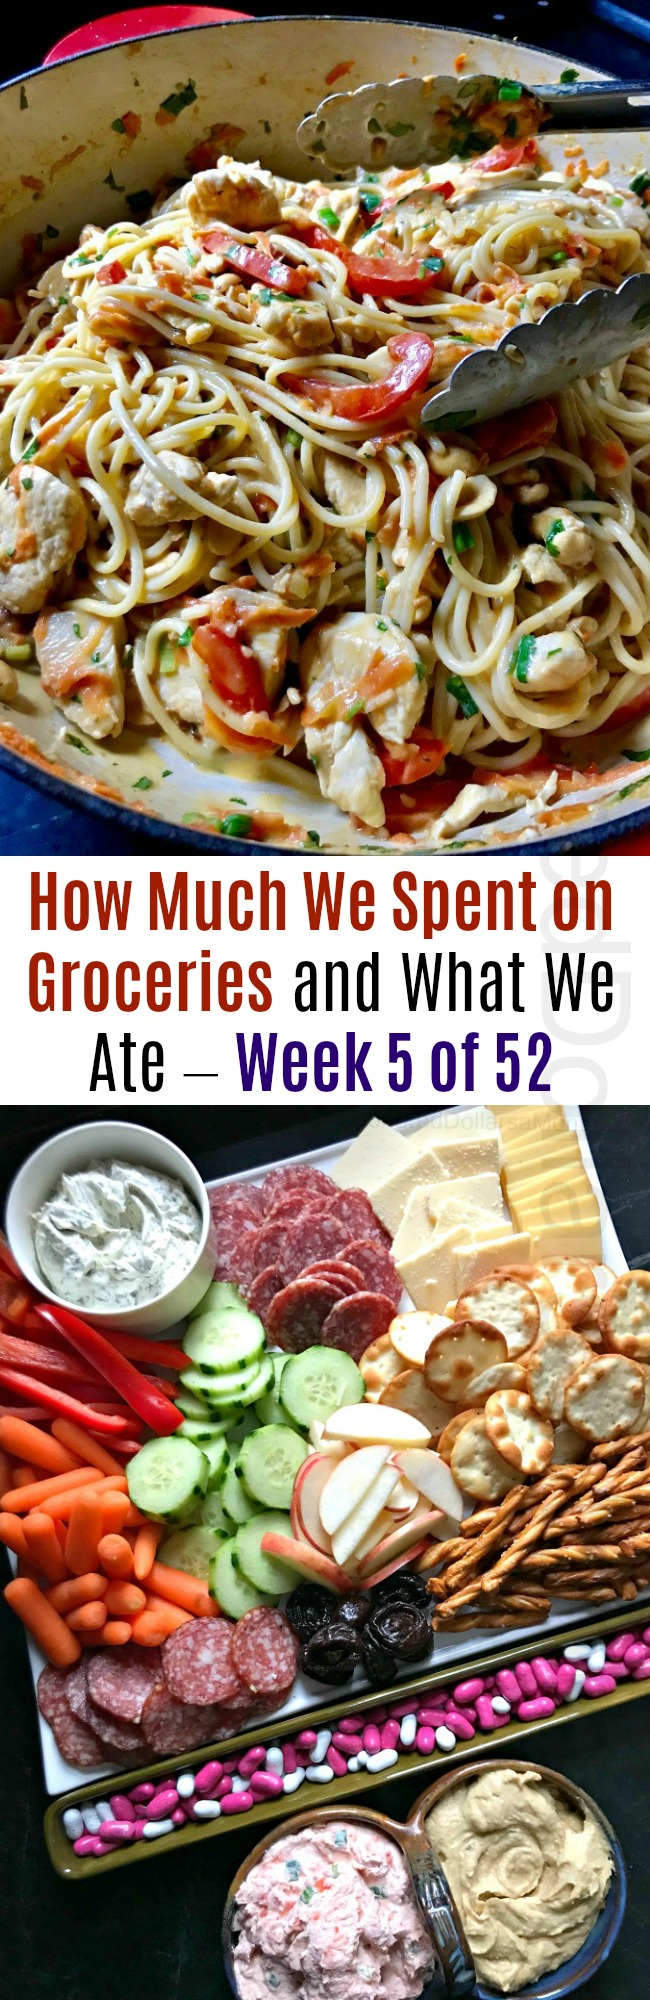 How Much We Spent on Groceries and What We Ate – Week 5 of 52